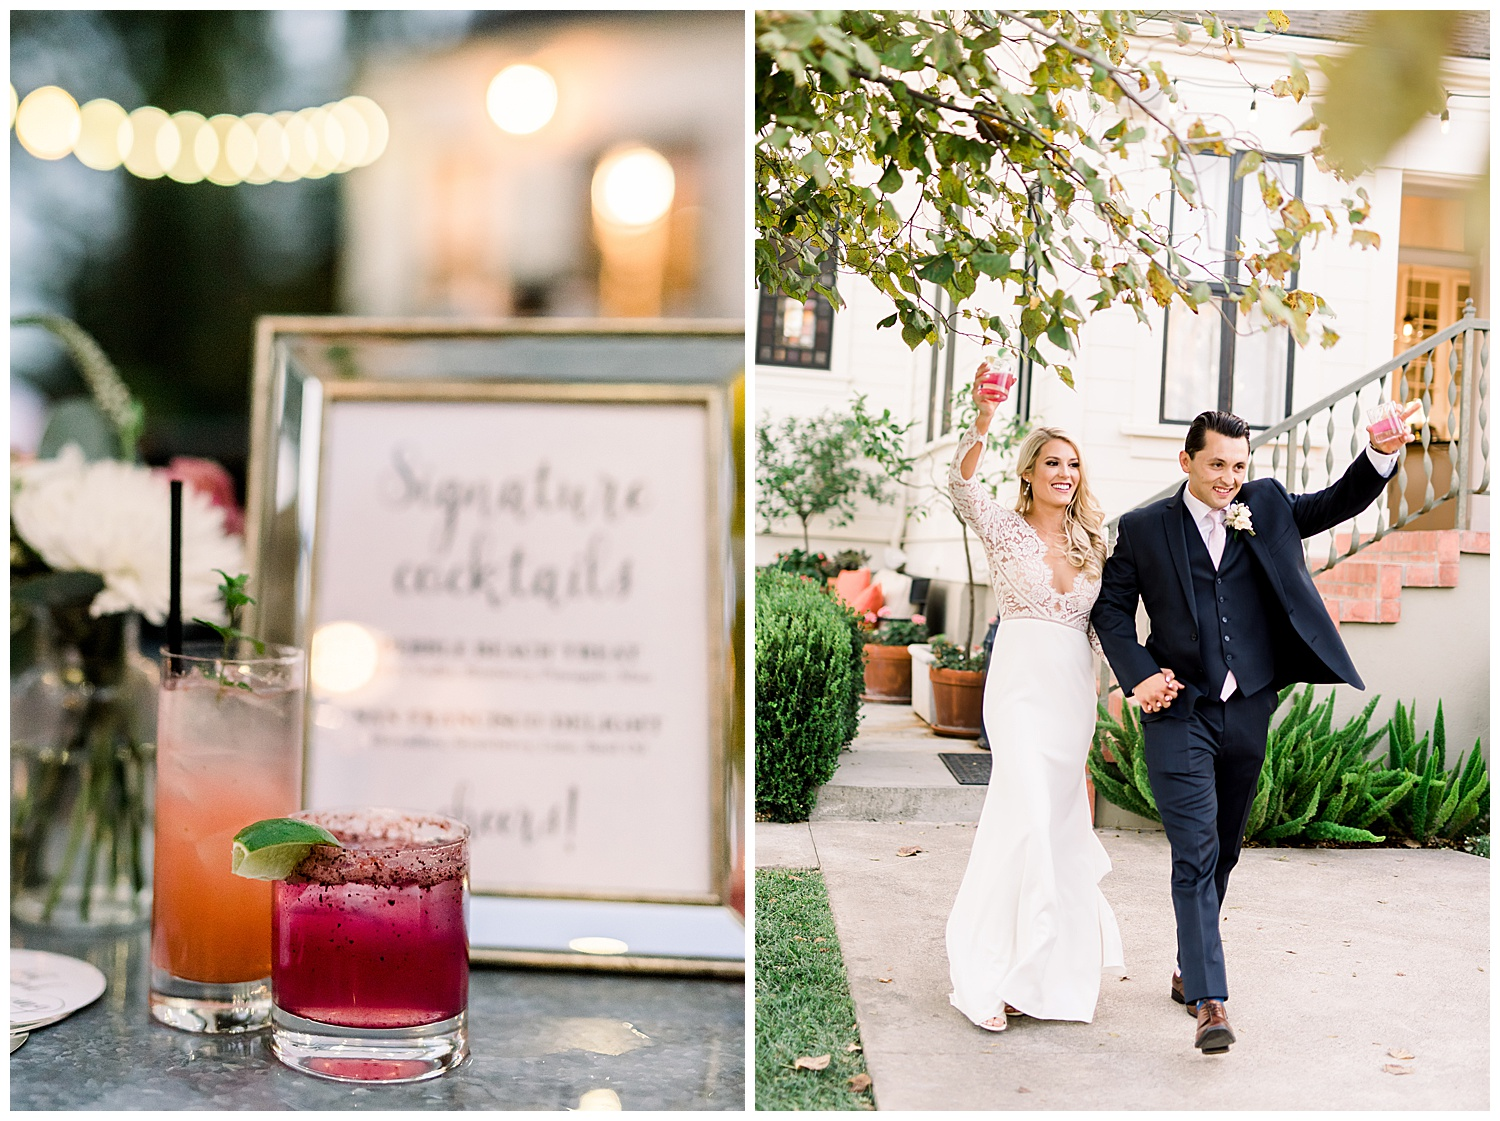 Janine_Licare_Photography_San_Francisco_Wedding_Photographer_Carneros_Tyge_Williams_Sonoma_Napa_0233.jpg